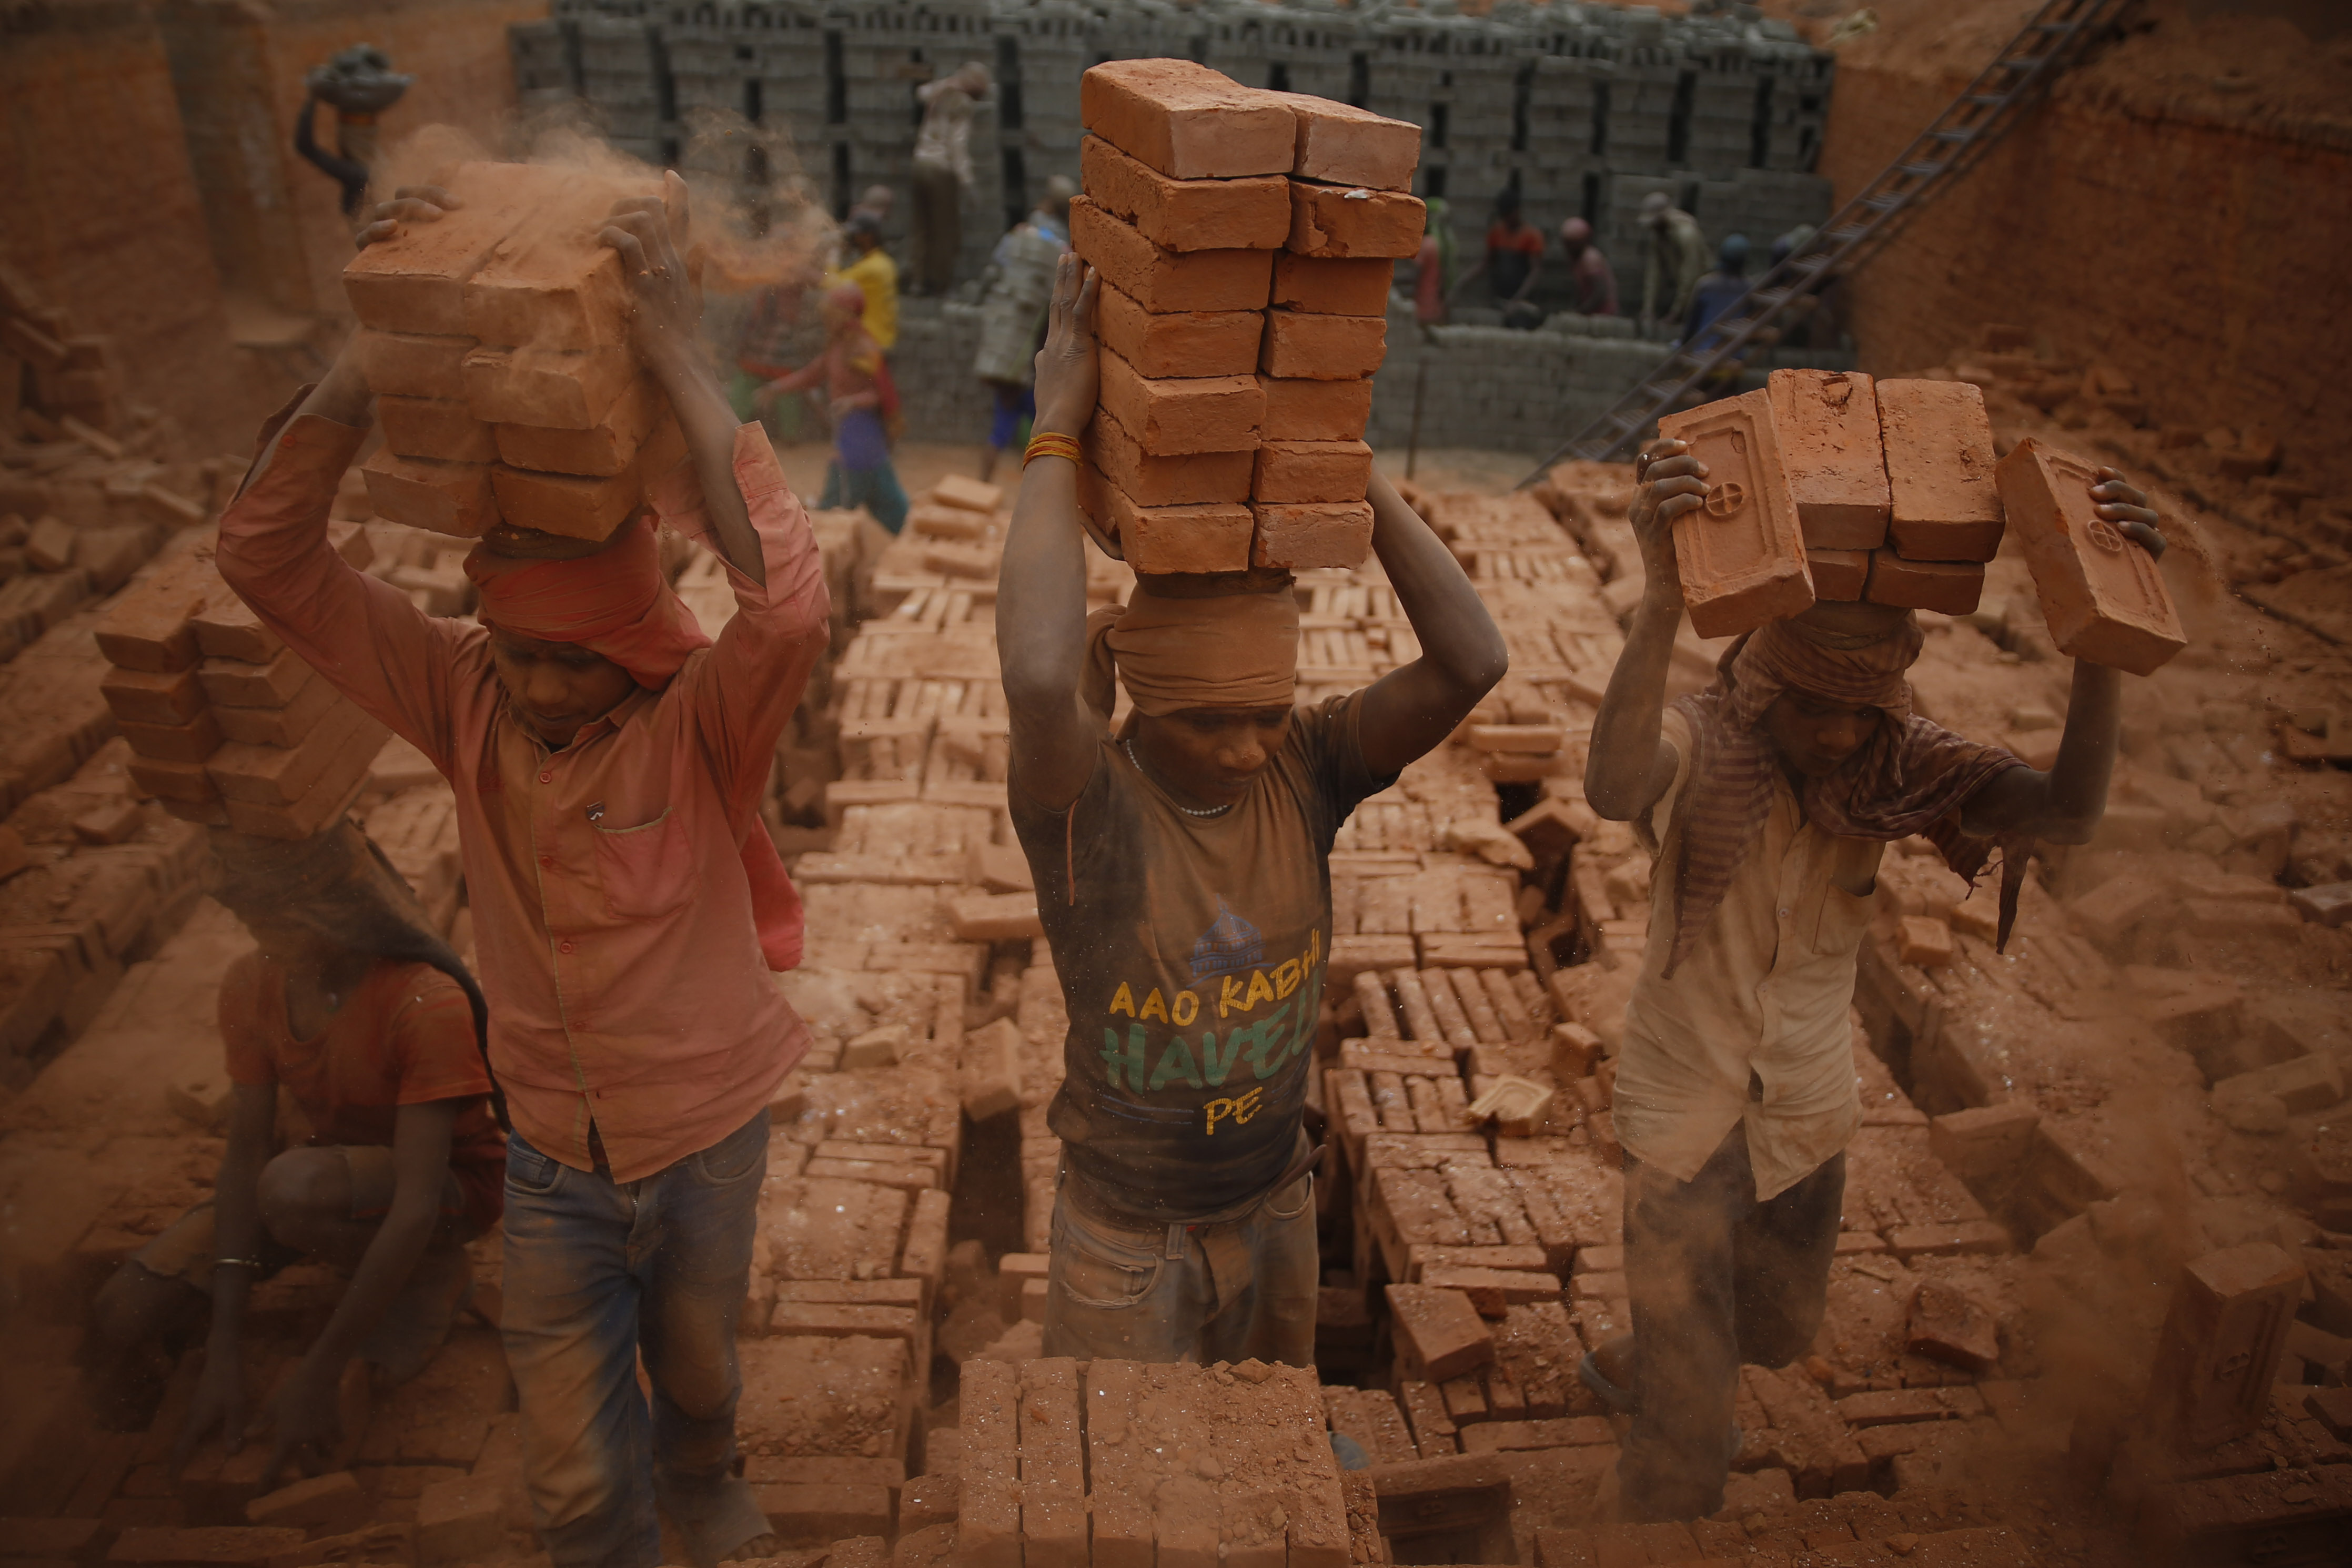 Labourers work at a brick kiln a day ahead of Labour Day, on the 38th day of government-imposed lockdown, amid concerns over the spread of coronavirus contagion, in Bhaktapur, on Thursday, April 30, 2020. Photo: Skanda Gautam/THT